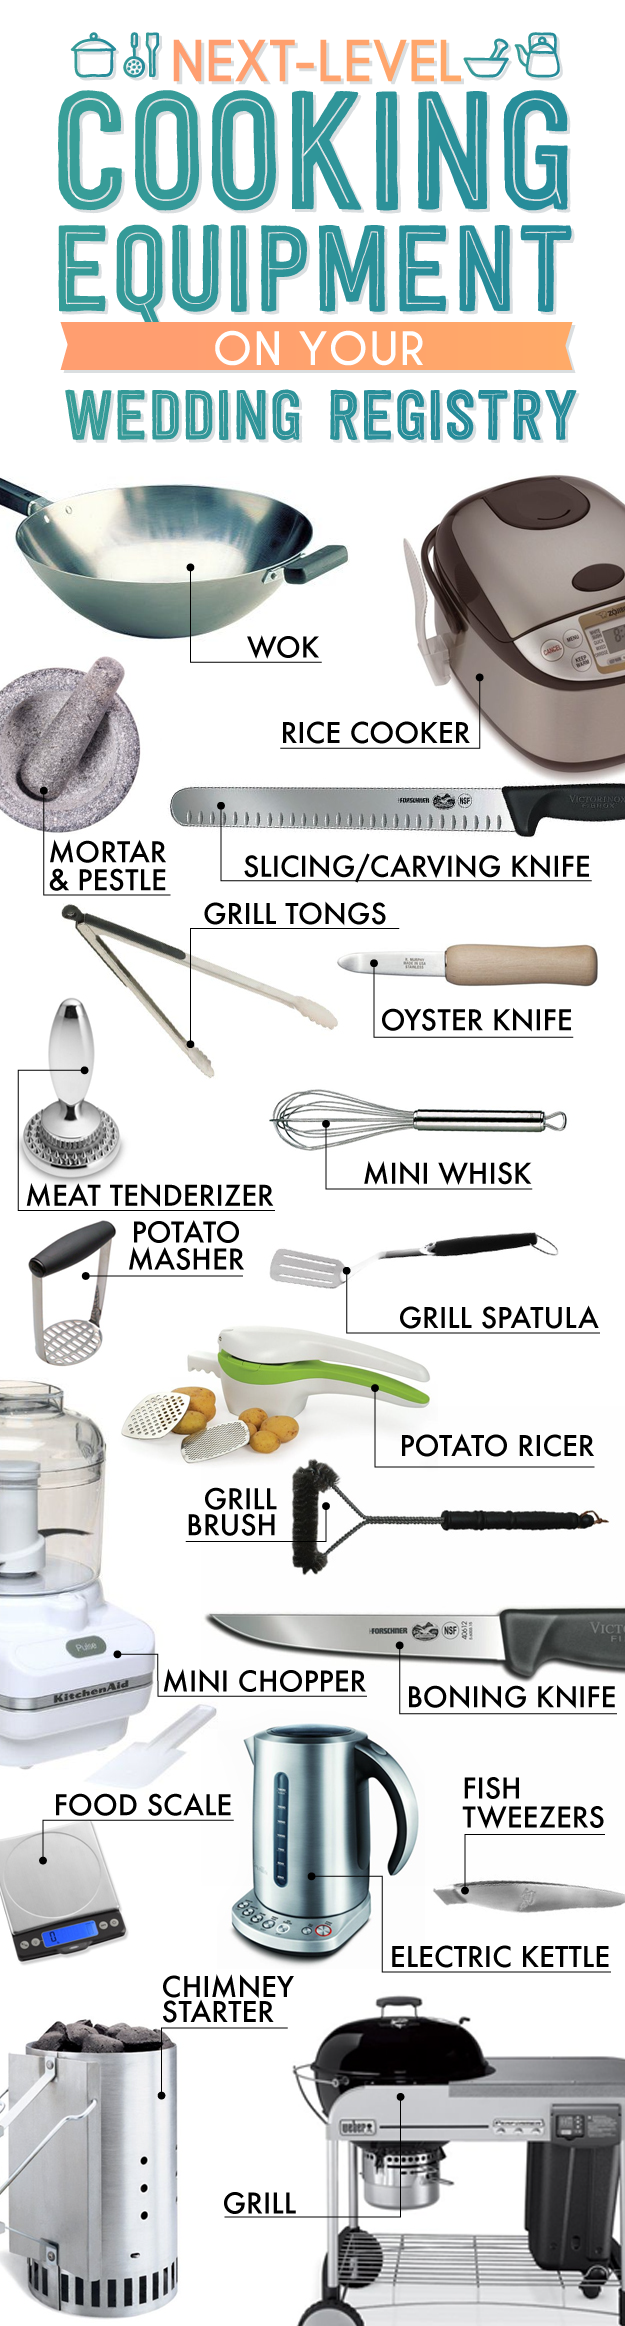 Kitchen Tools List the essential wedding registry list for your kitchen | kitchens